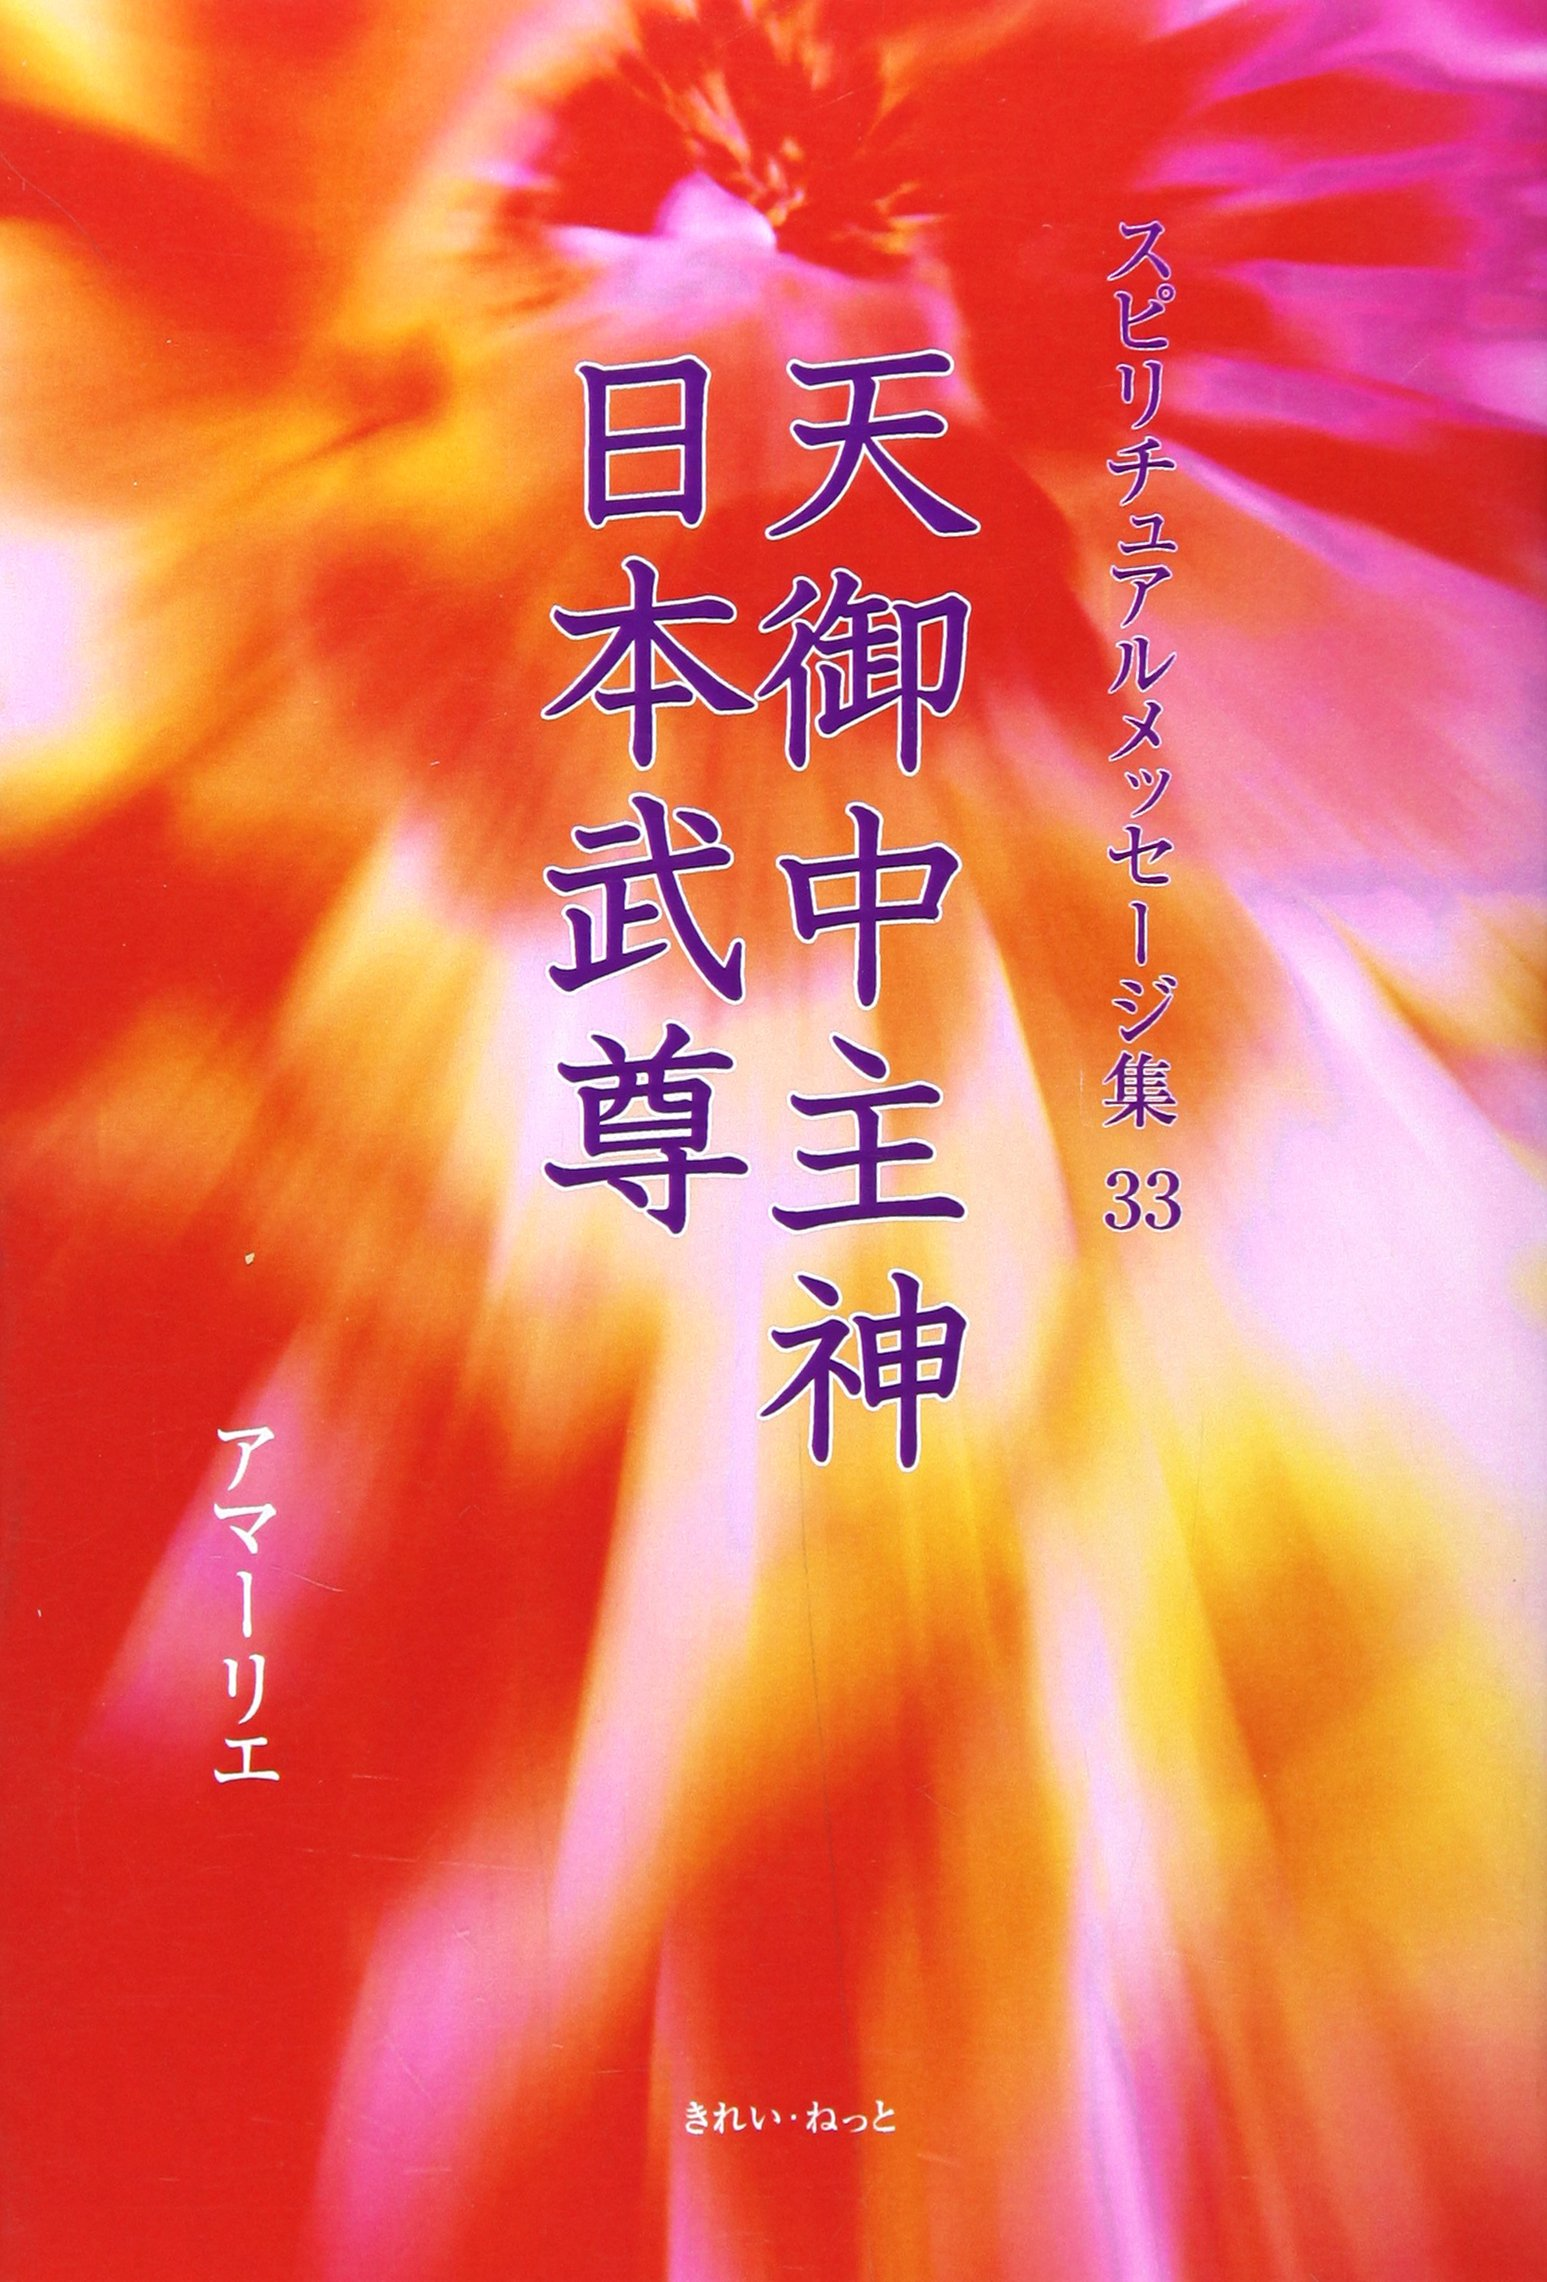 Download Supirichuaru messejishu. 33 (Amenominakanushinokami yamato takeru no mikoto). ebook